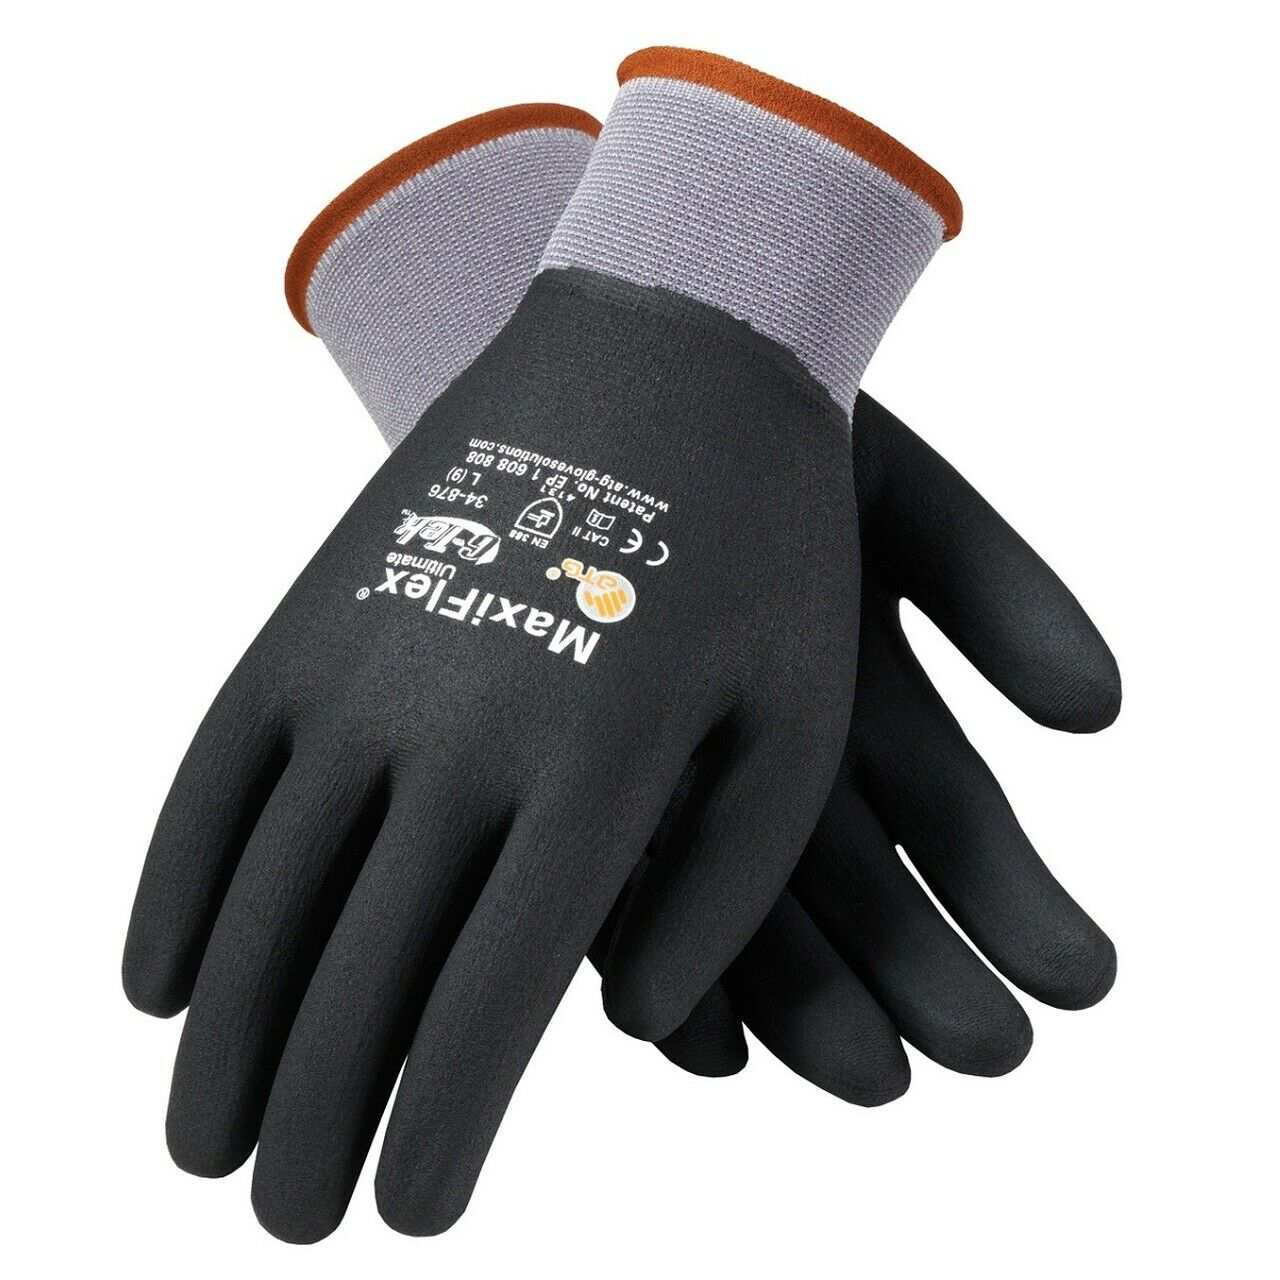 MaxiFlex 34-876 Mens Knit Nylon/Lycra Glove Nitrile Coated MicroFoam Size SM-XXL Business & Industrial